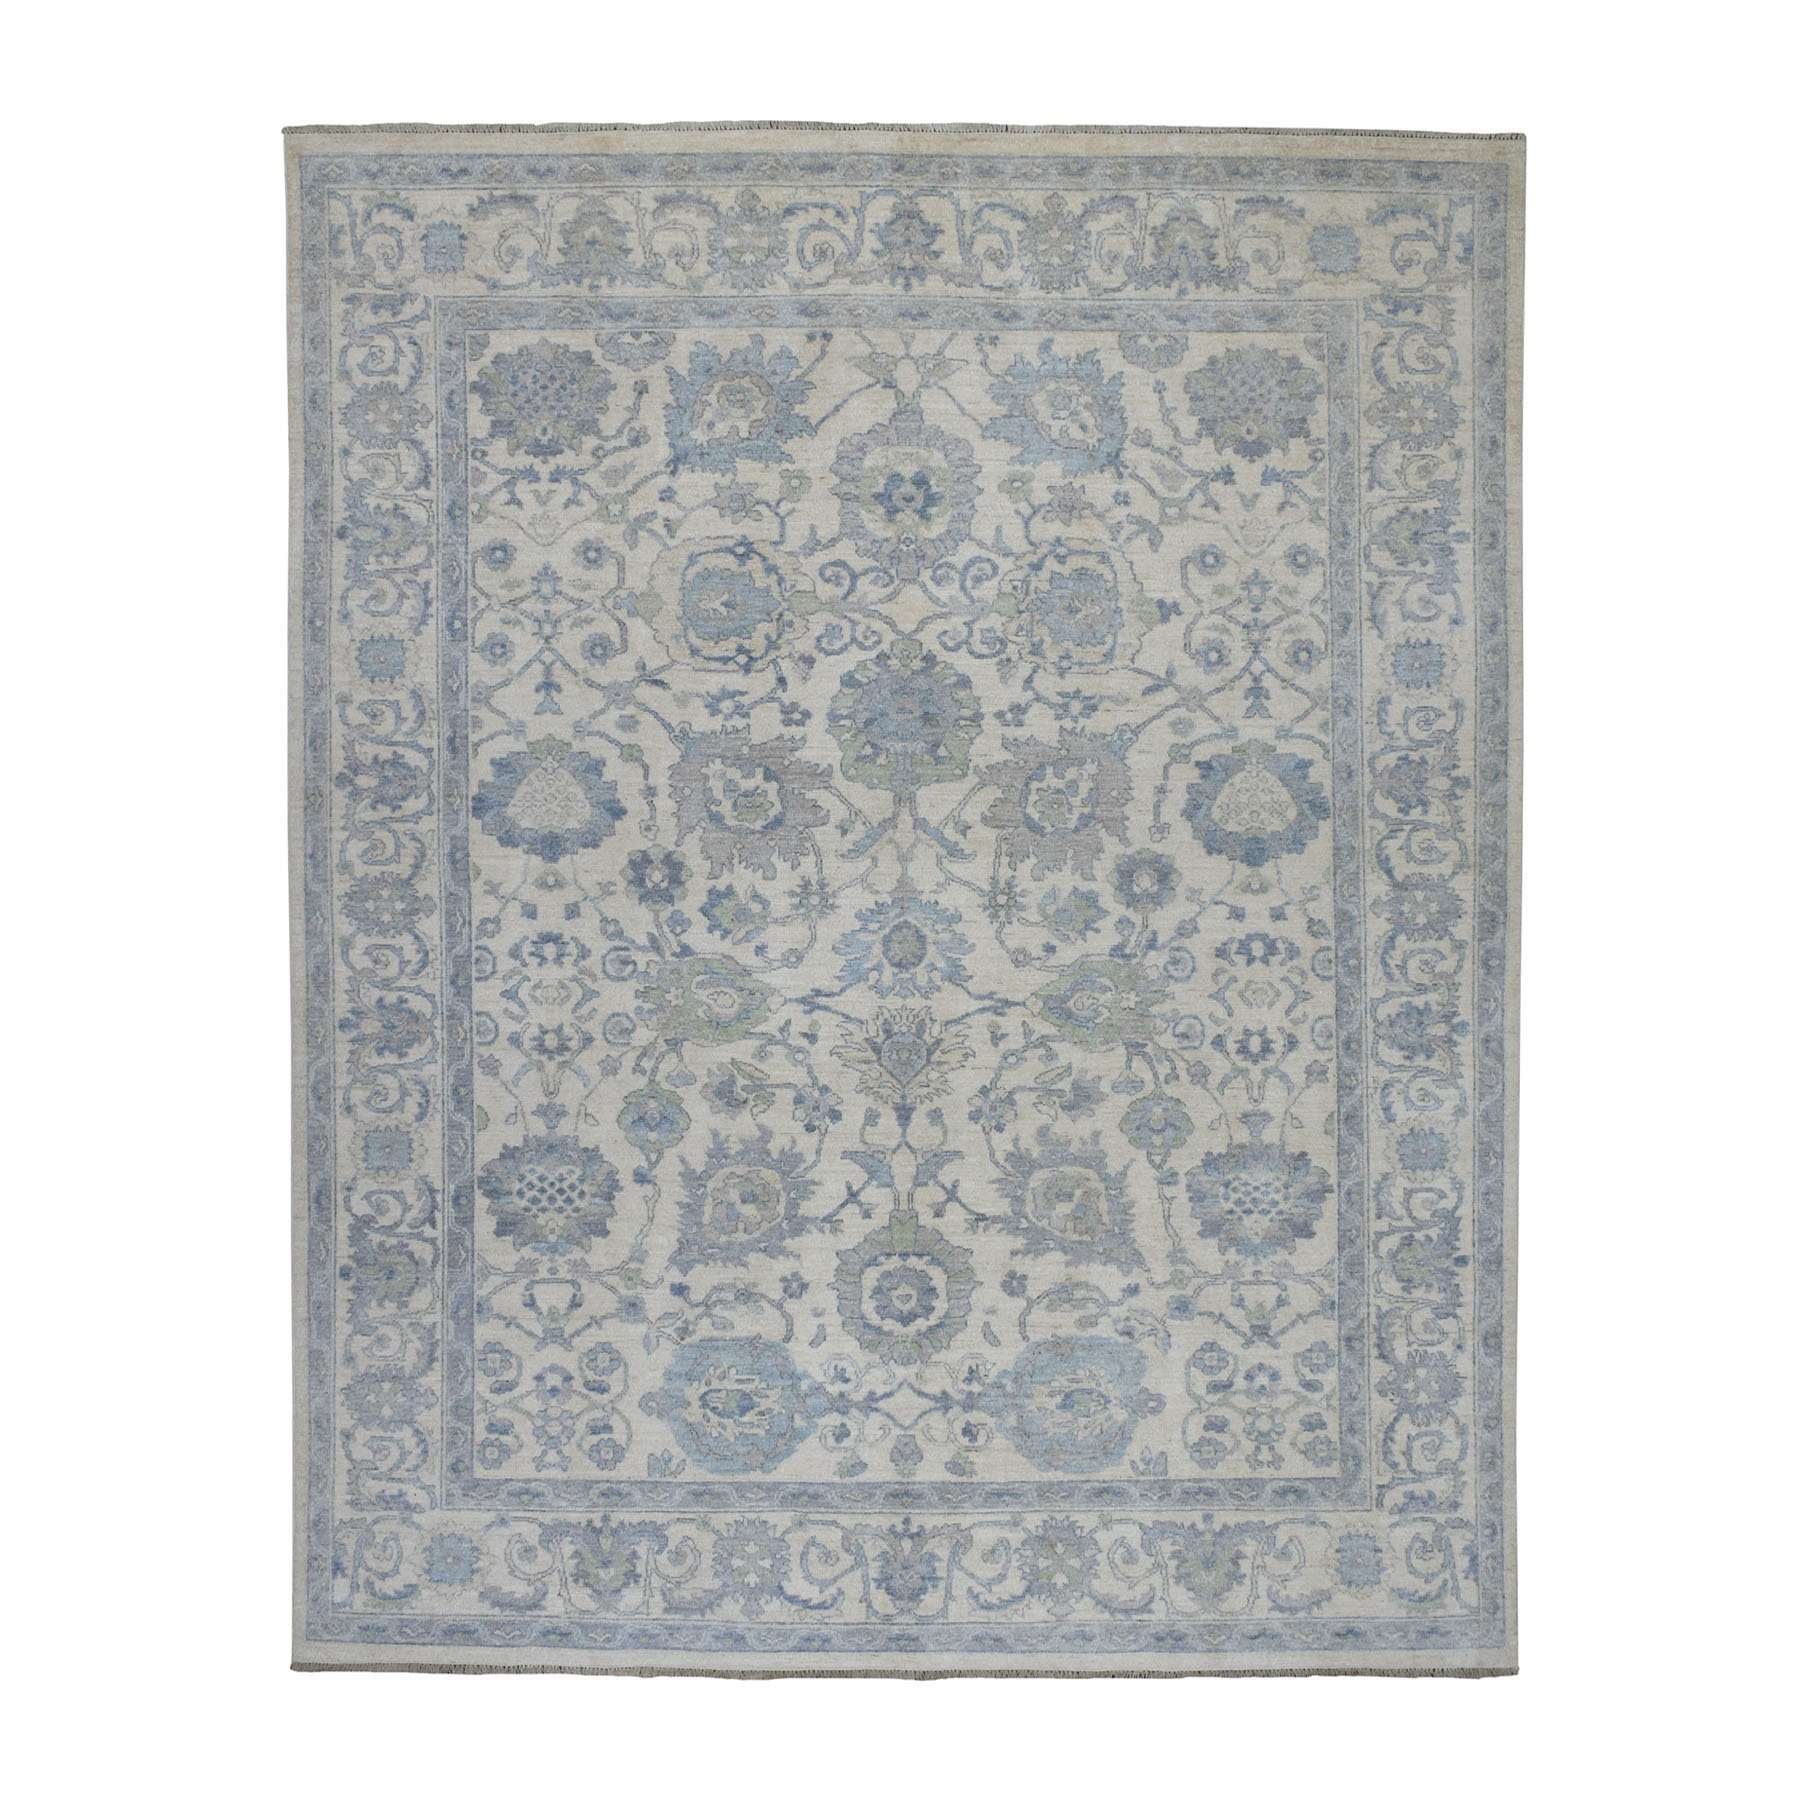 "8'x9'8"" White Wash Peshawar Pure Wool Hand Knotted Oriental Rug"